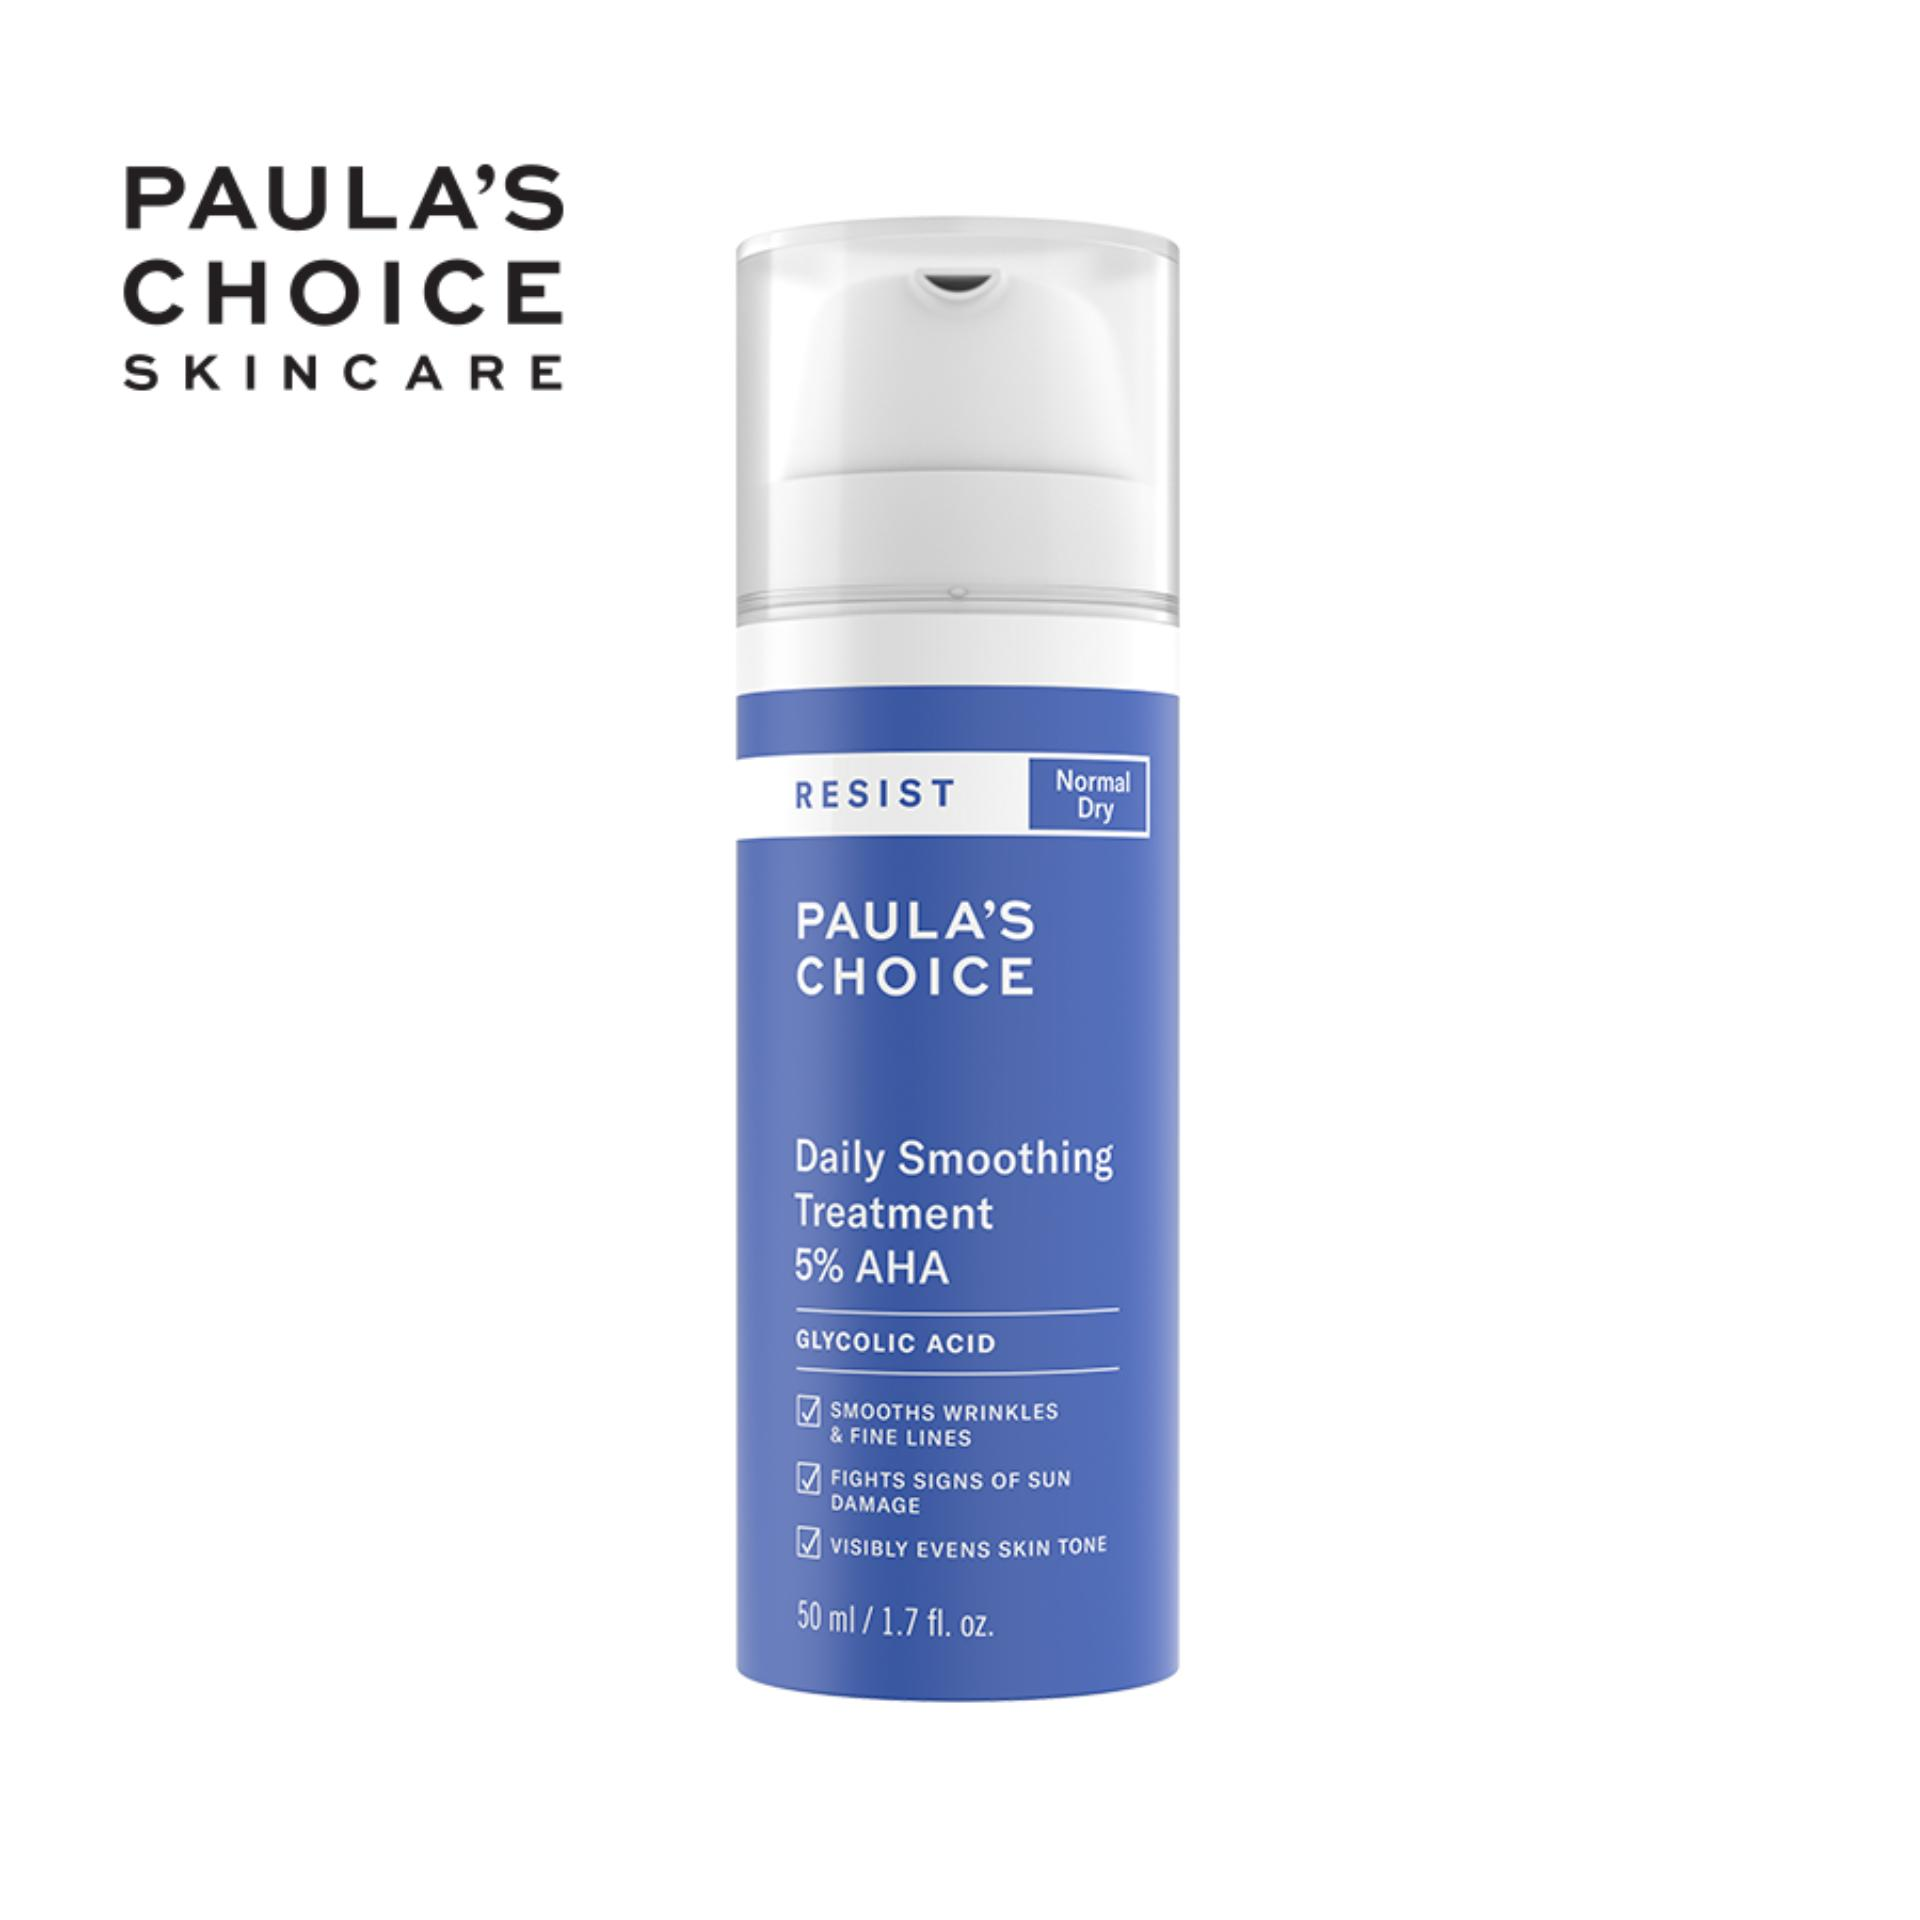 Dung dịch làm mềm da Paula's Choice RESIST Daily Smoothing Treatment With 5% AHA 50 ml